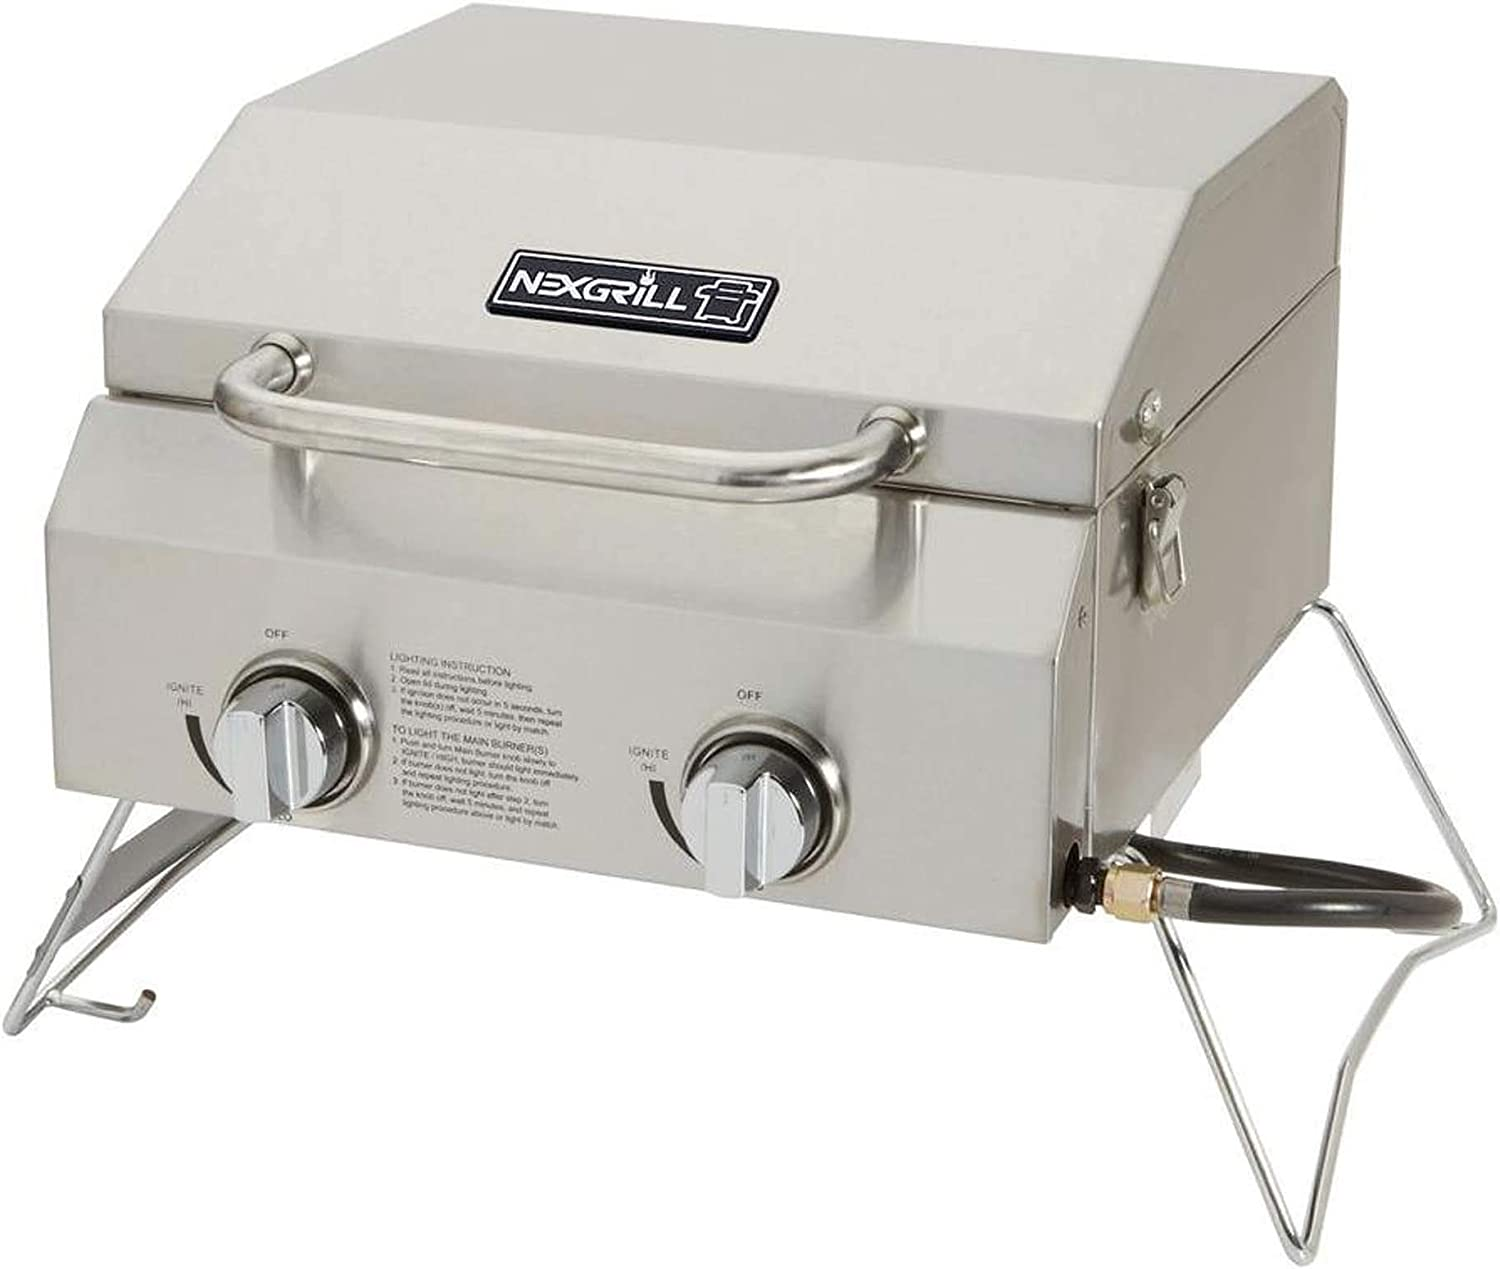 Char-Broil Classic 360 3-Burner Liquid Propane Gas Grill with Side Burner Renewed